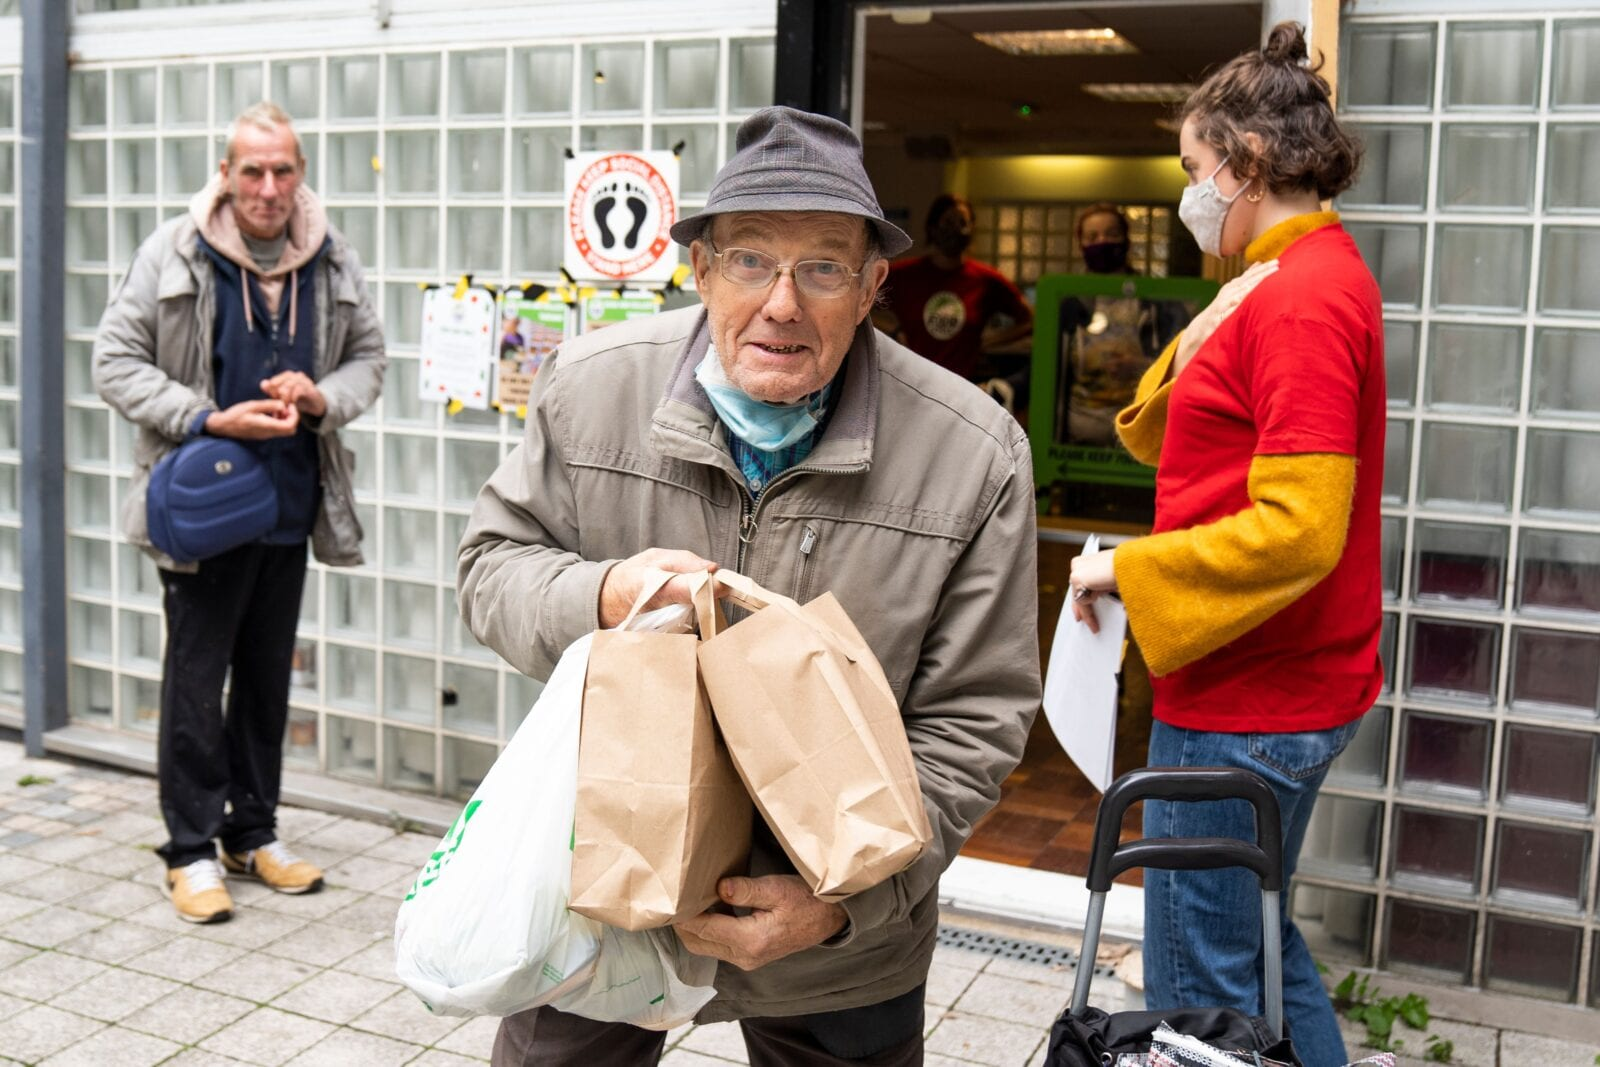 Manchester-based food charity launches 'cook & collect' service to provide free meals during lockdown, The Manc